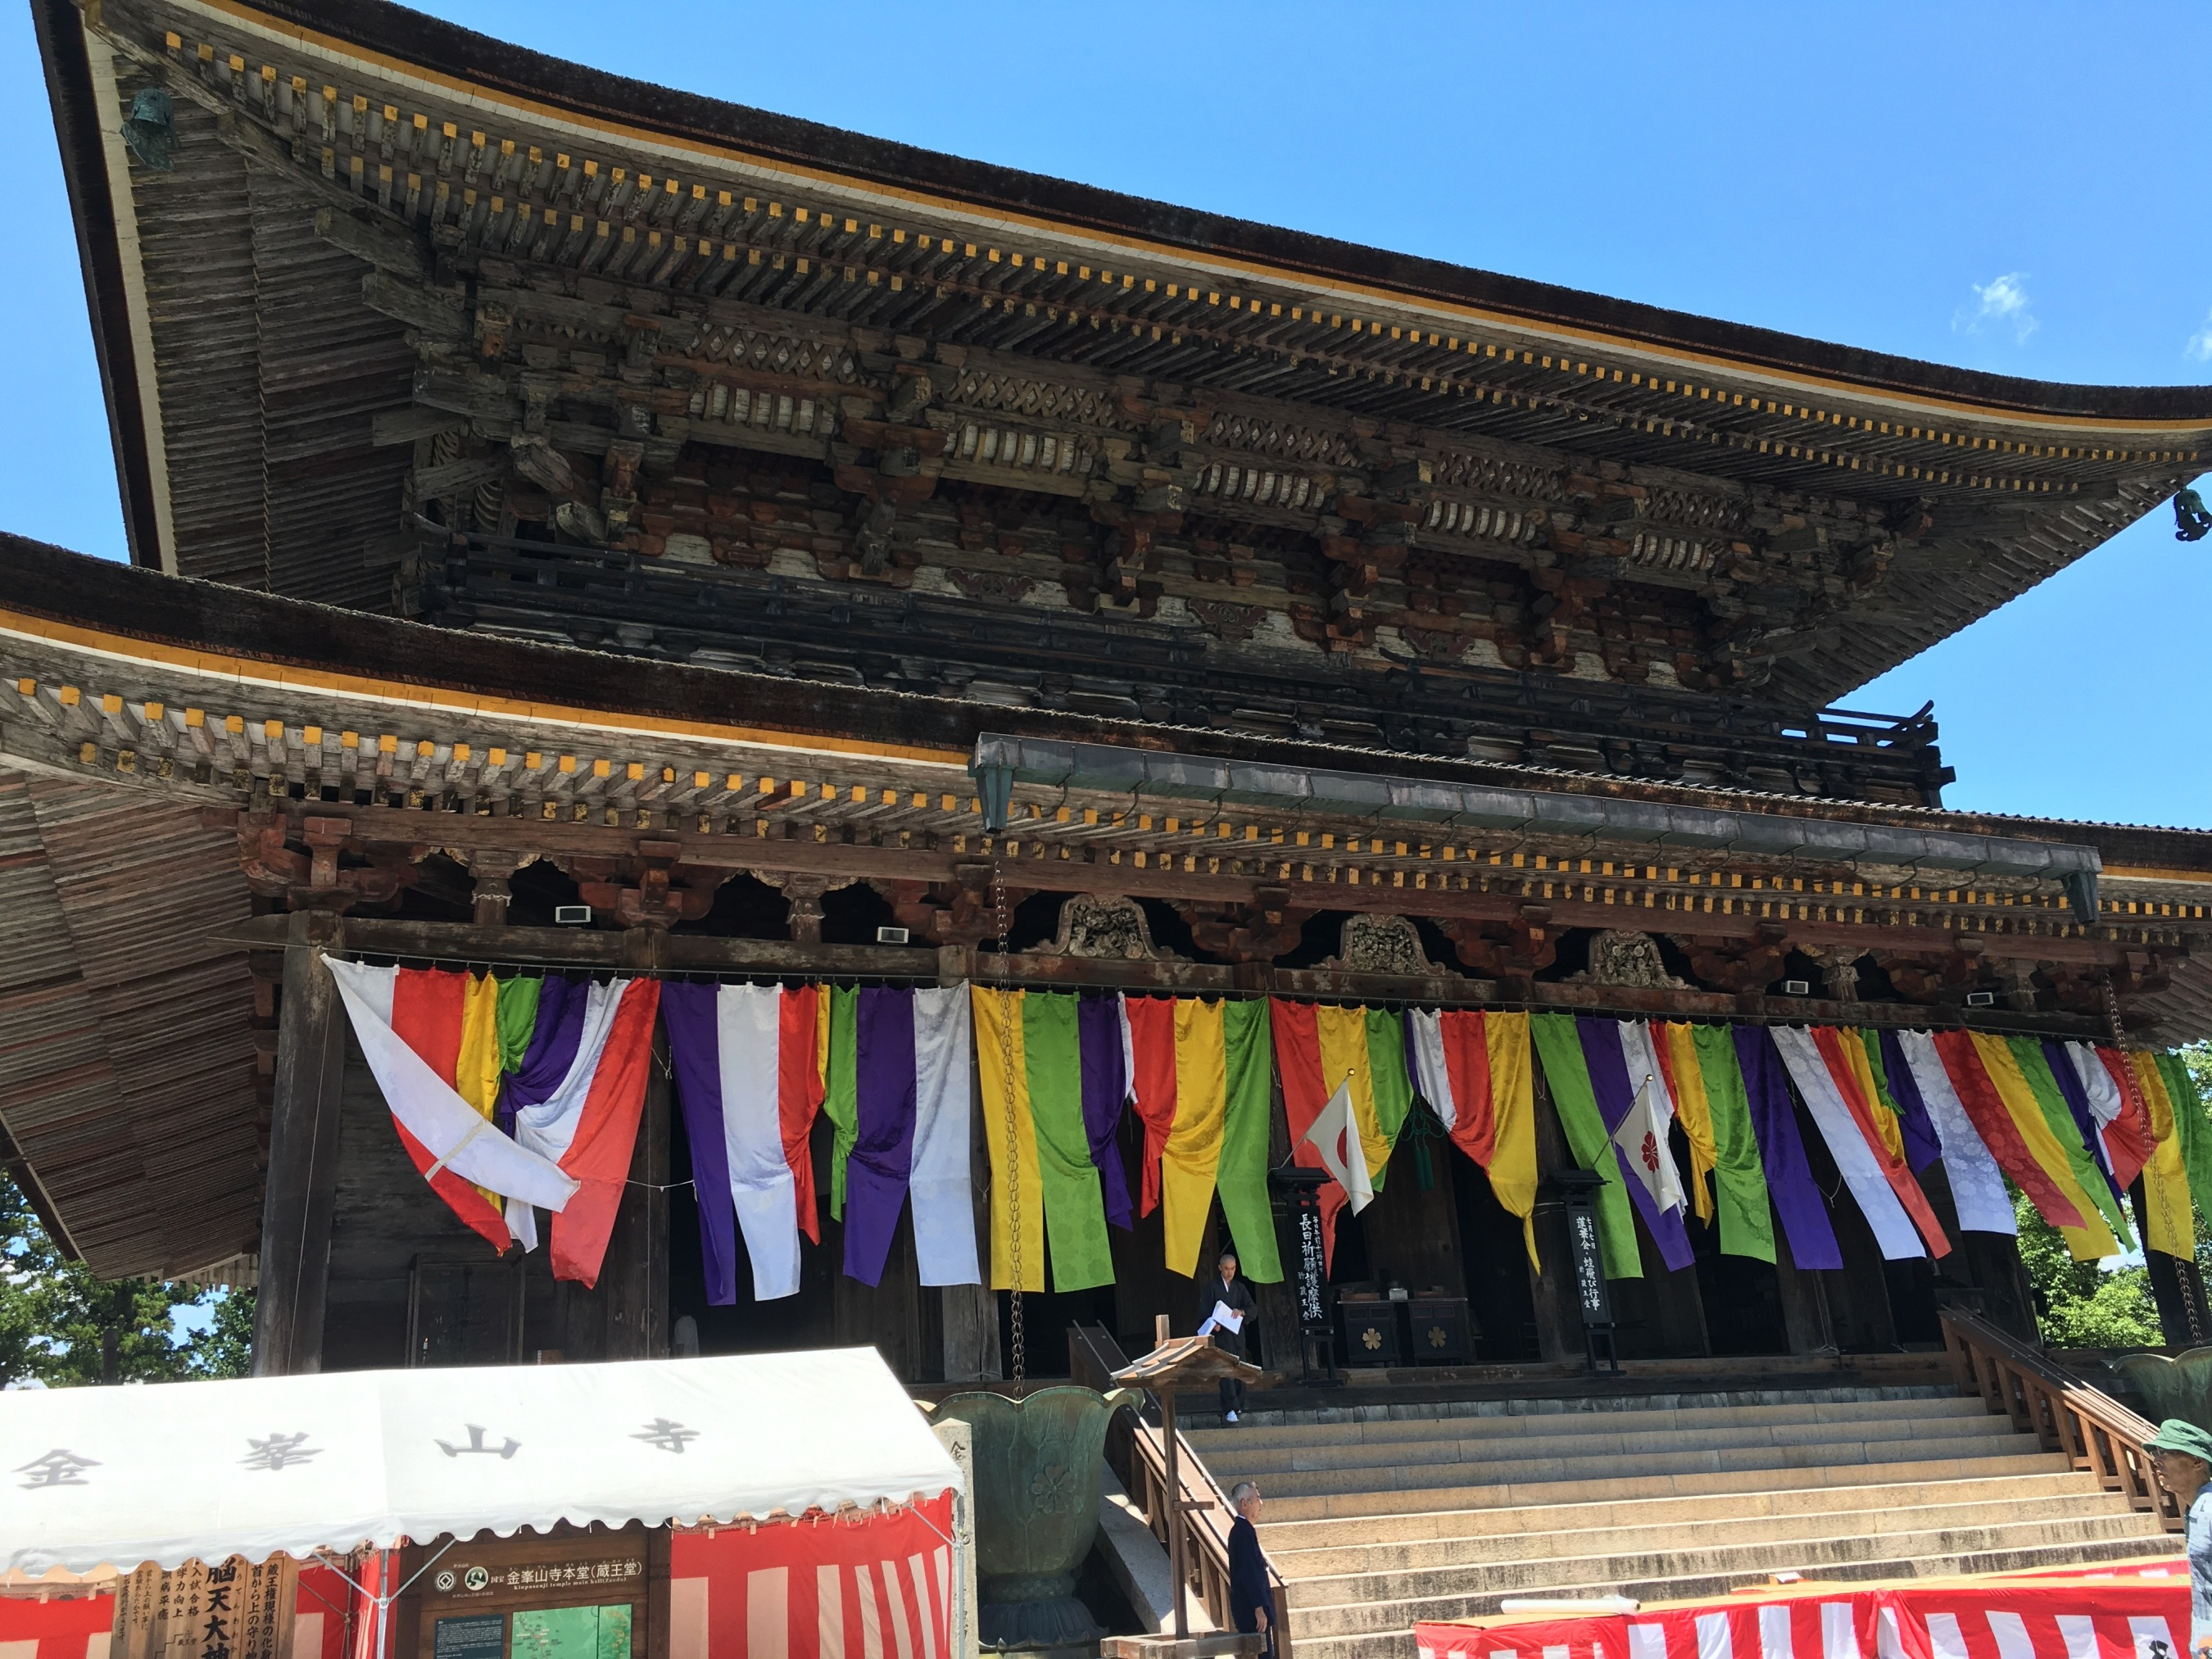 Here is a closer view of Kimpusen-ji Temple. The five coloured banners are only displayed during Festivals or other major events. I have read that they represent the five Chinese elements of earth, water, fire, metal and wood.